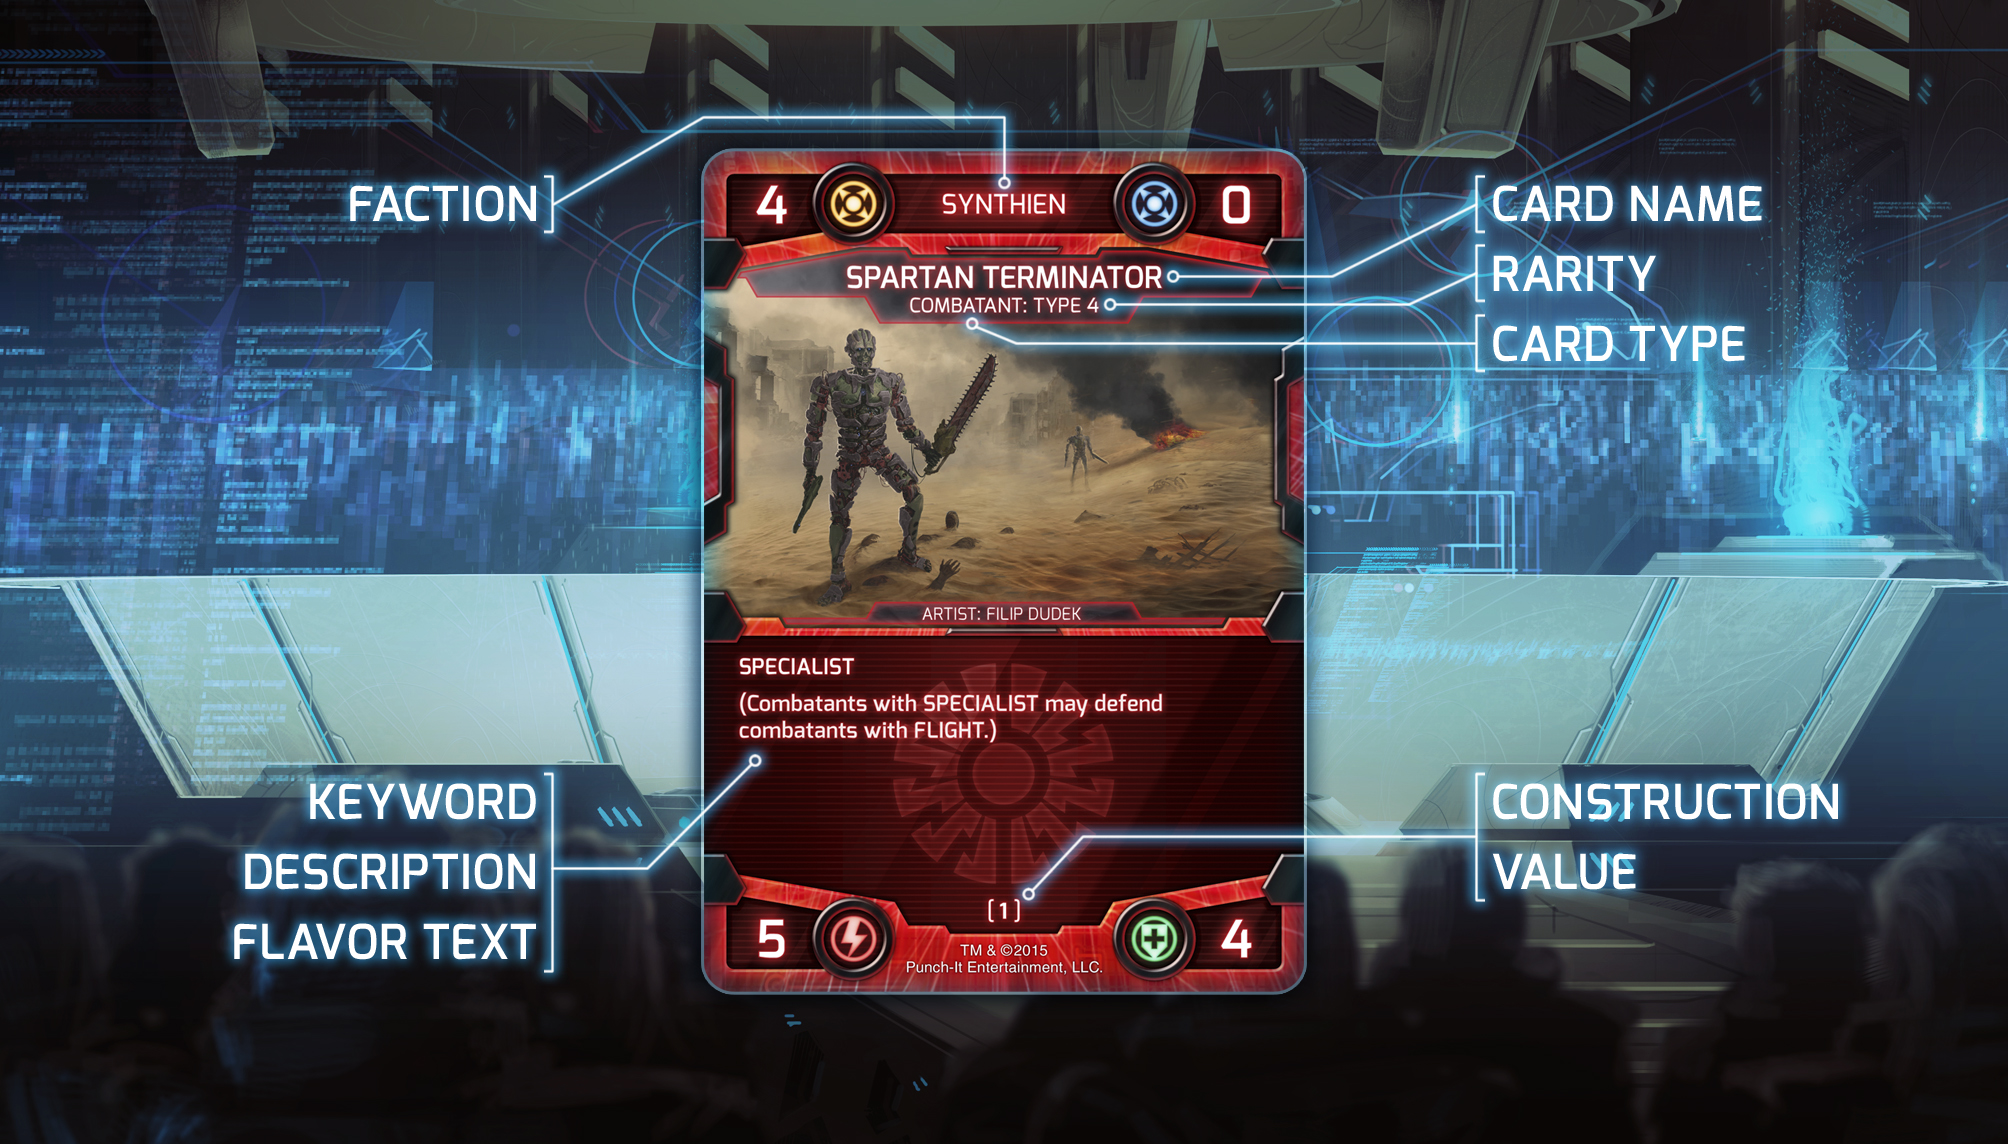 The fine print: Faction, name, rarity, keywords/abilities, and construction value